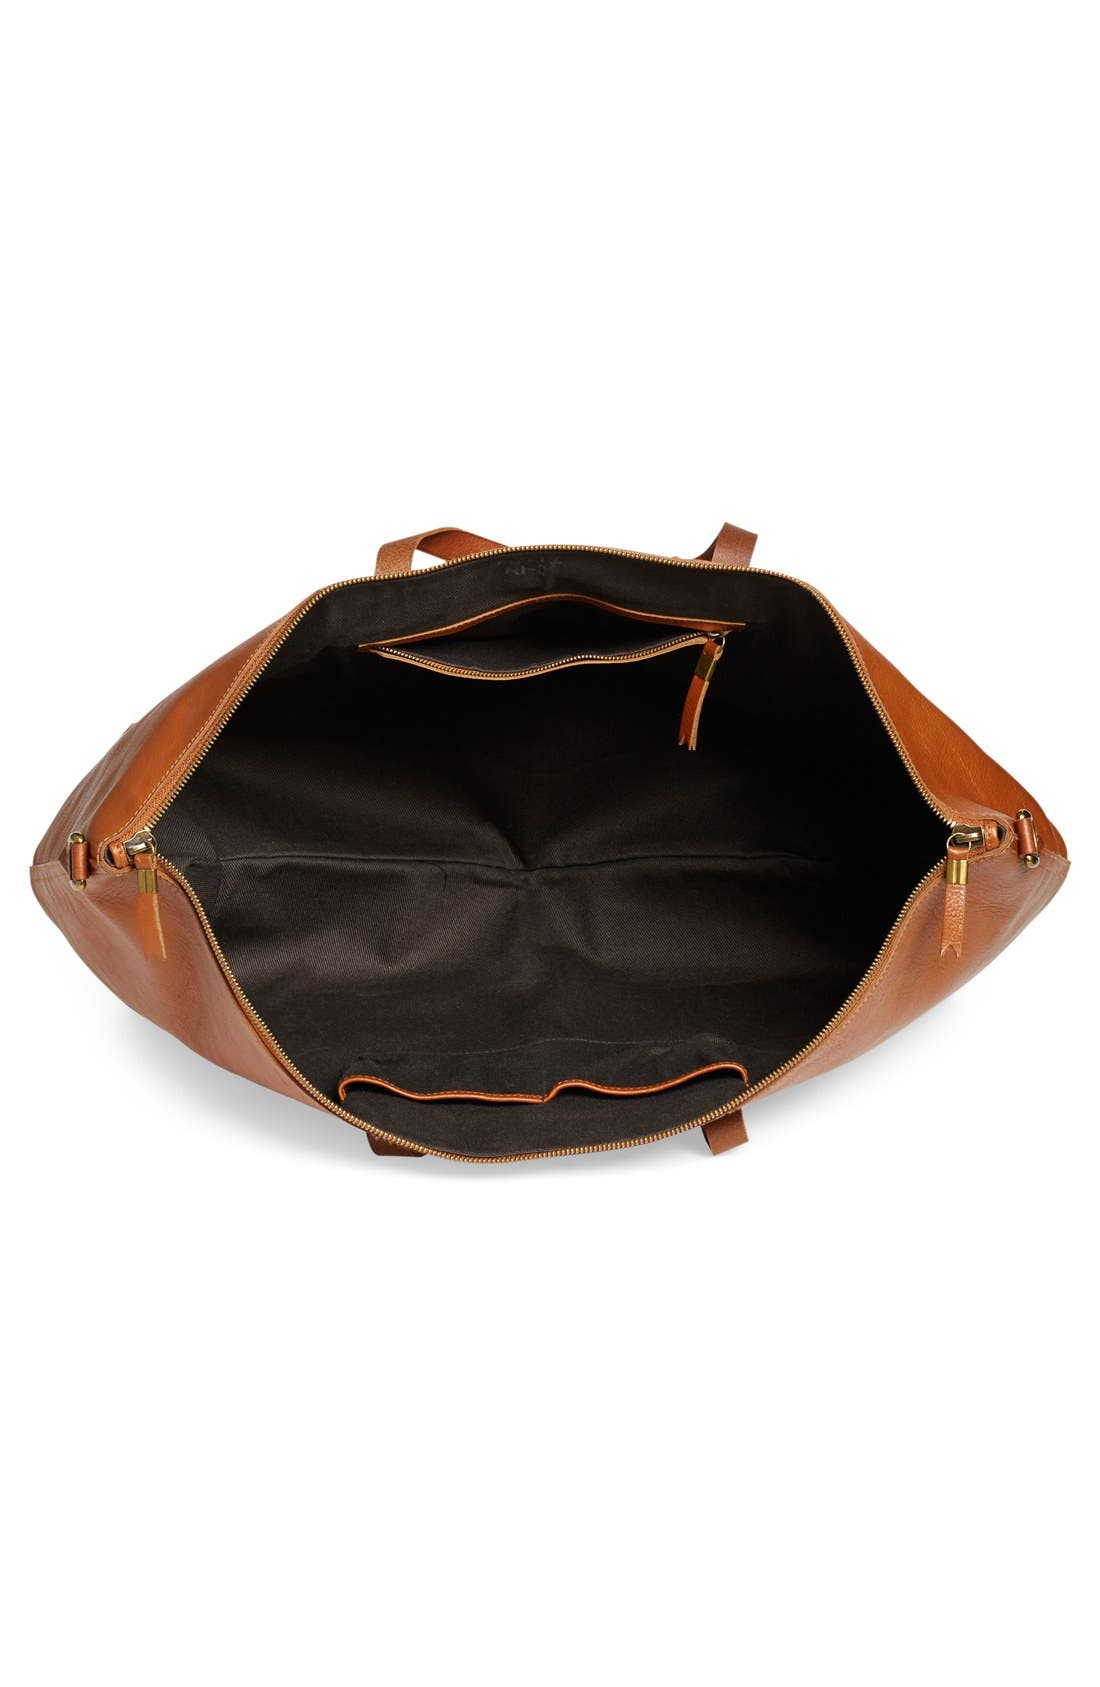 'Transport' Weekend Bag,                             Alternate thumbnail 4, color,                             English Saddle